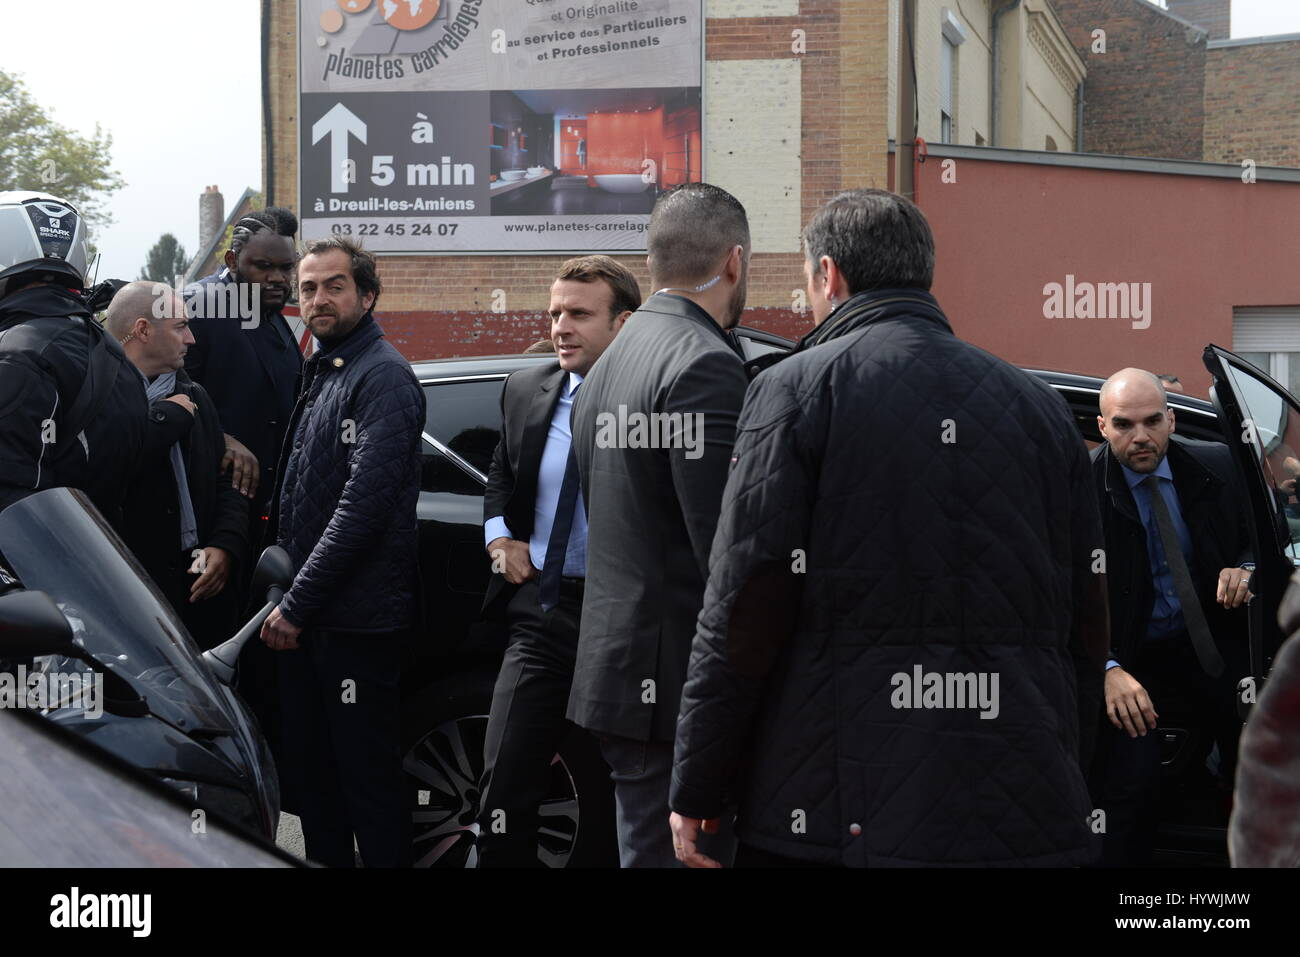 France elections 2017 live - Arras France 26th April 2017 Amiens Emmanuel Macron Jeered By Whirlpool Workers During His Presidential Elections Campaign 2017